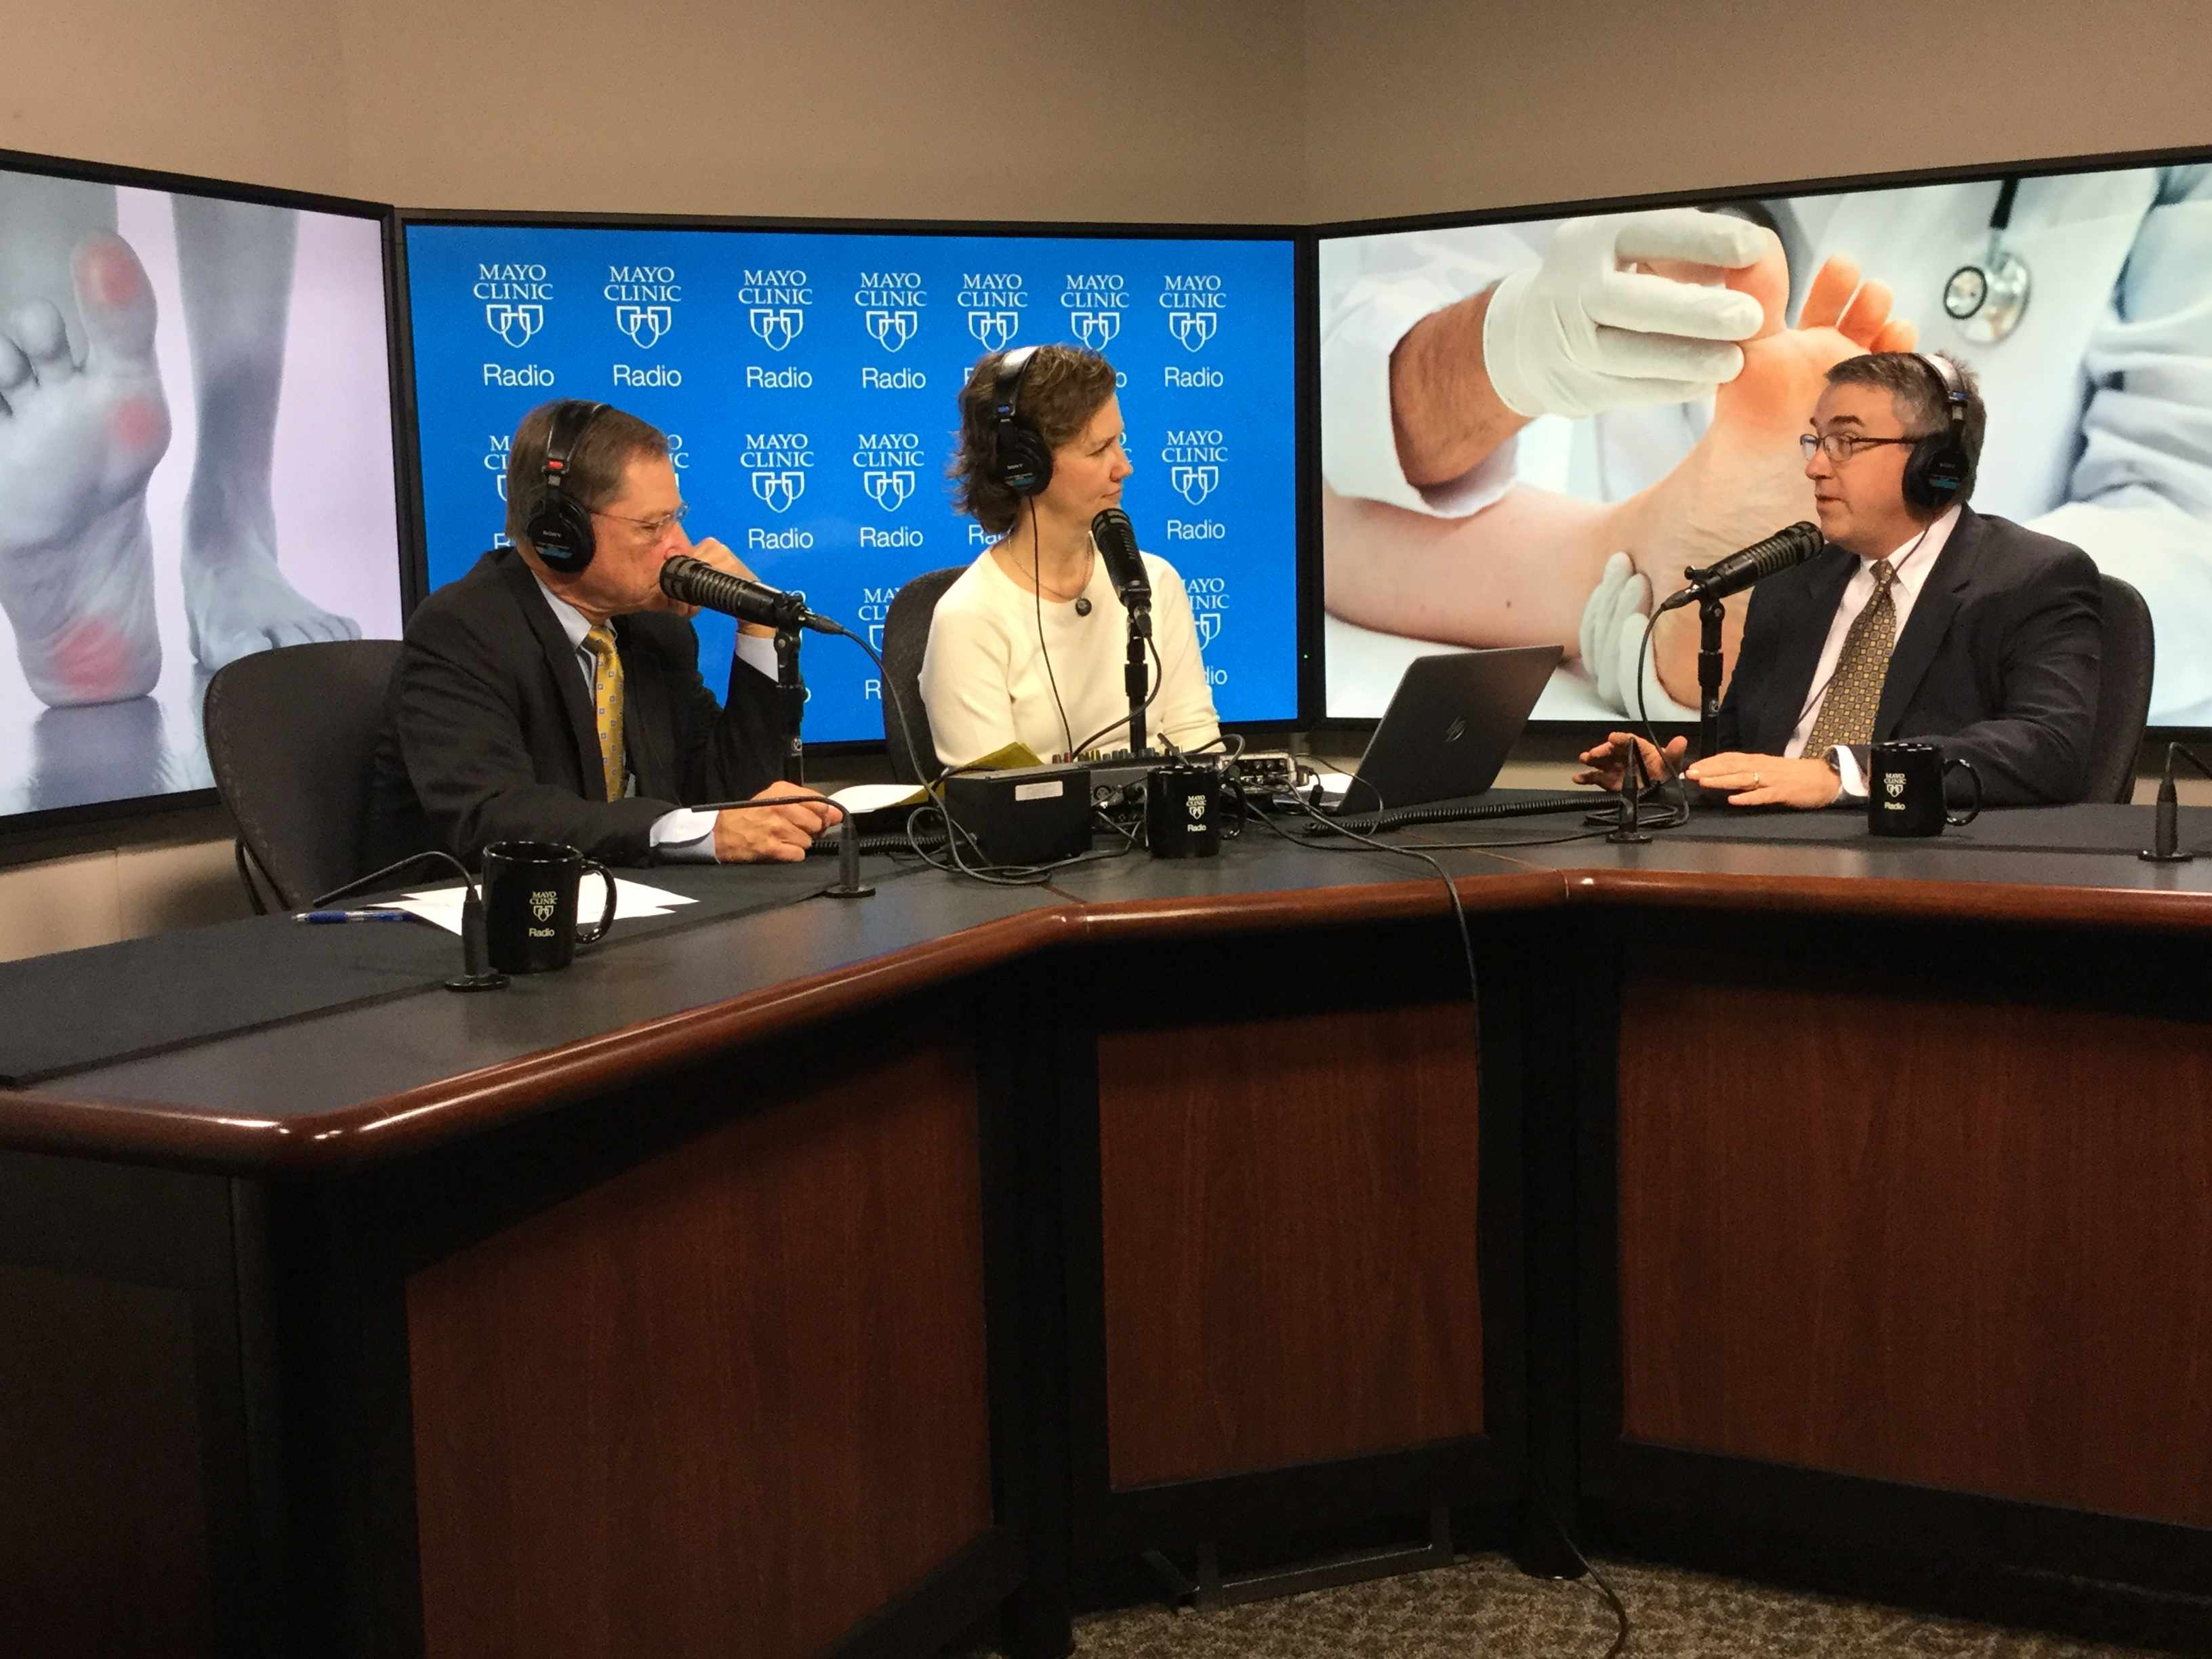 Dr. Norm Turner being interviewed on Mayo Clinic Radio